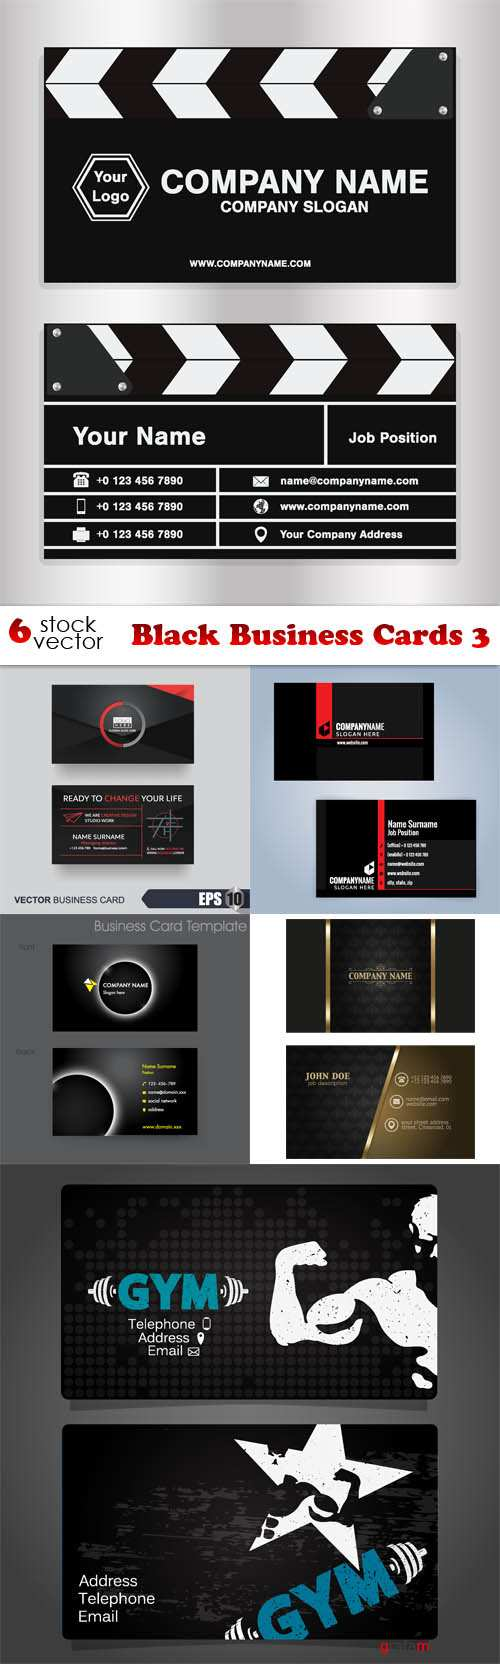 Vectors - Black Business Cards 3